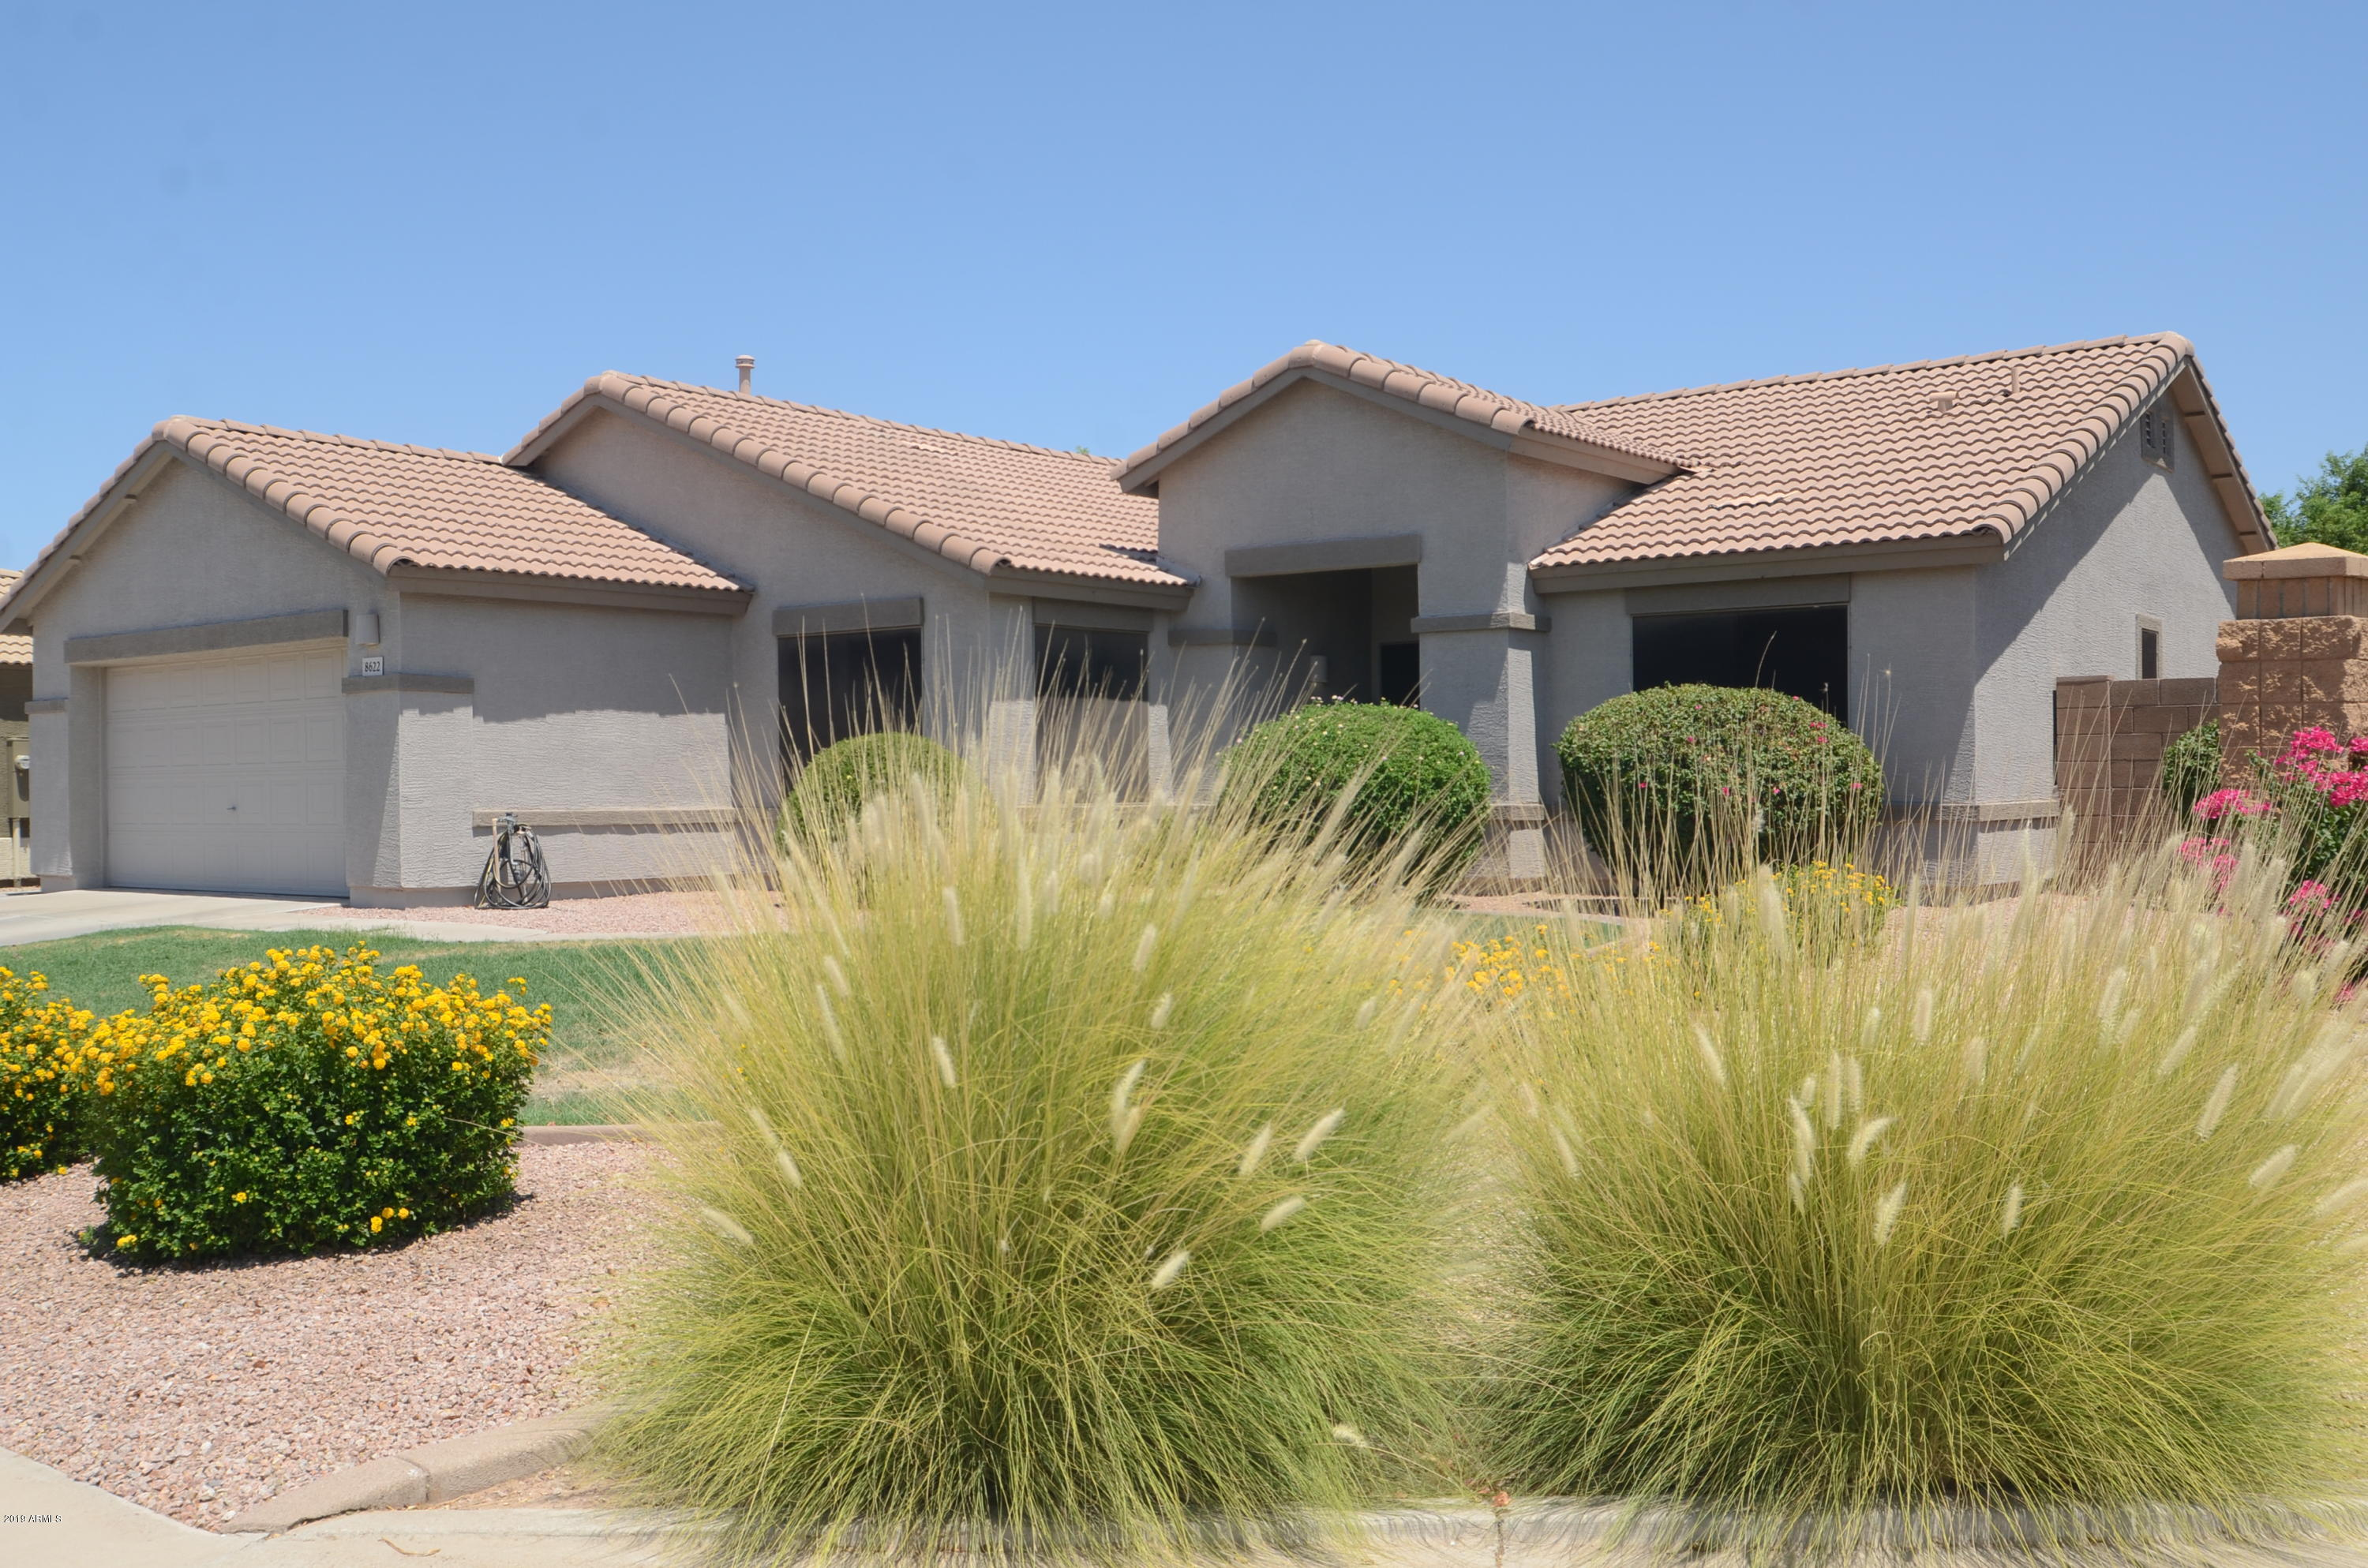 Photo of 8622 E OCASO Avenue, Mesa, AZ 85212